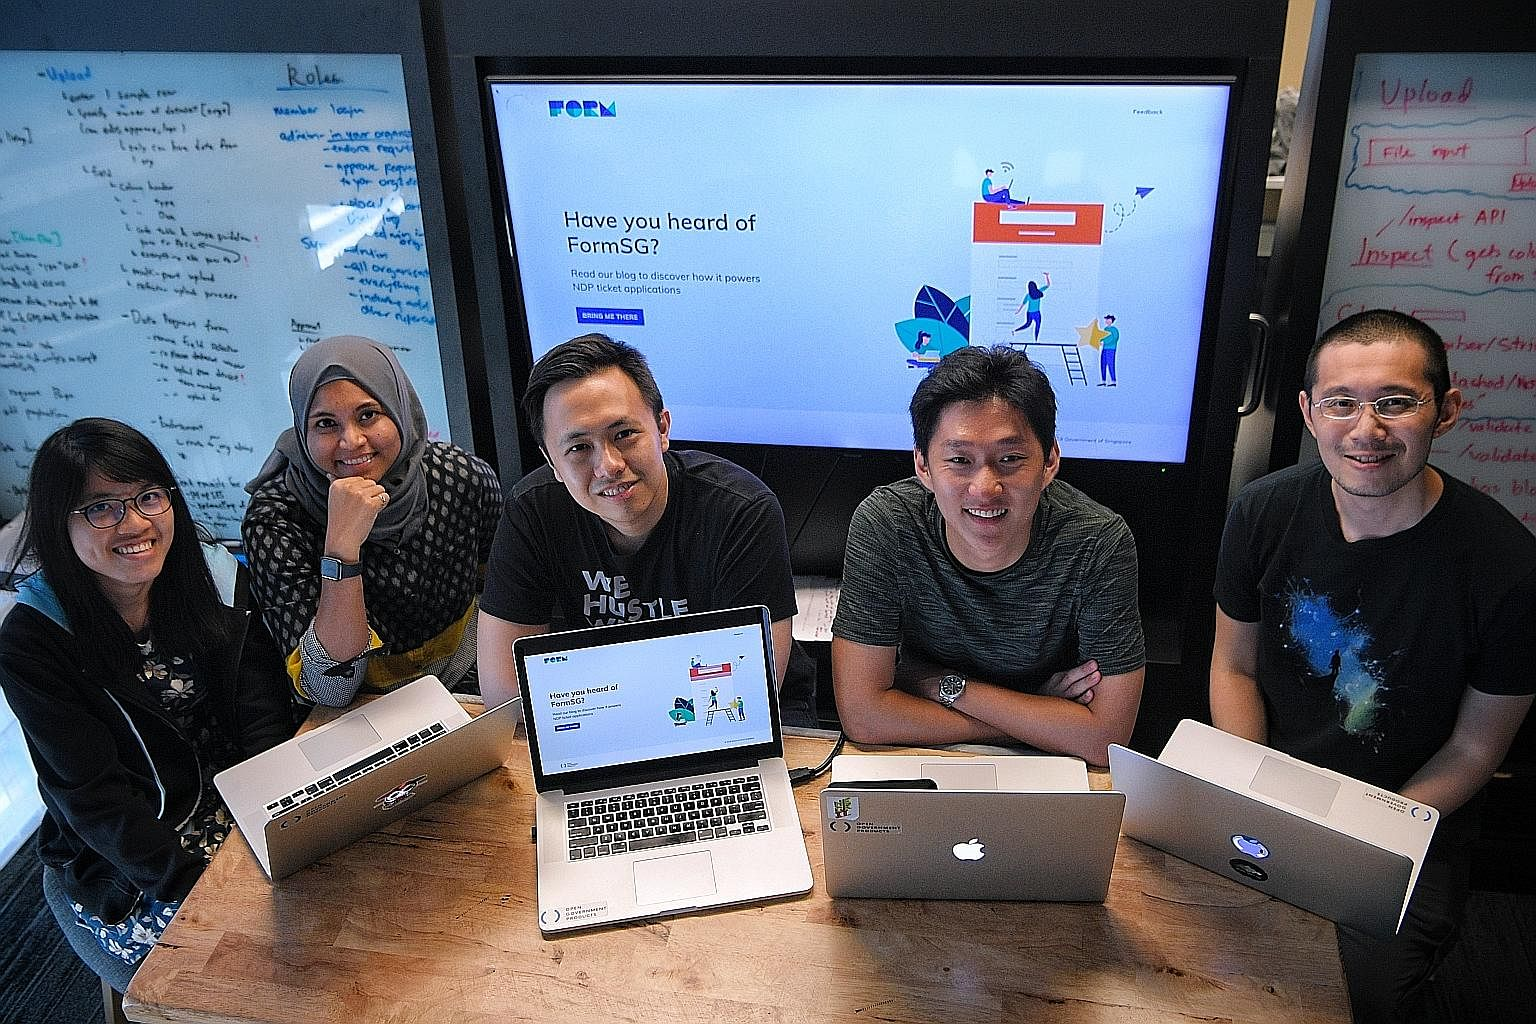 The team behind FormSG (from left) includes software engineer Jean Tan, 26; UX designer Sarah Salim; product manager Leonard Loo; software engineer Yuanruo Liang, 29; and Open Government Products head Li Hongyi.